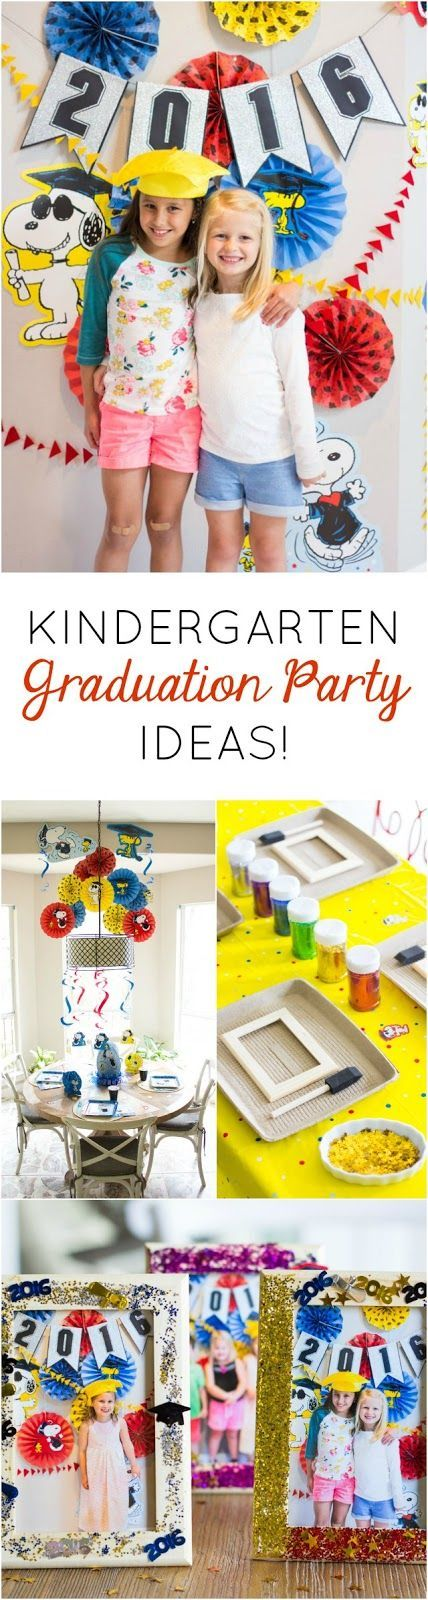 Some fun ideas for hosting a preschool or kindergarten graduation party playdate!